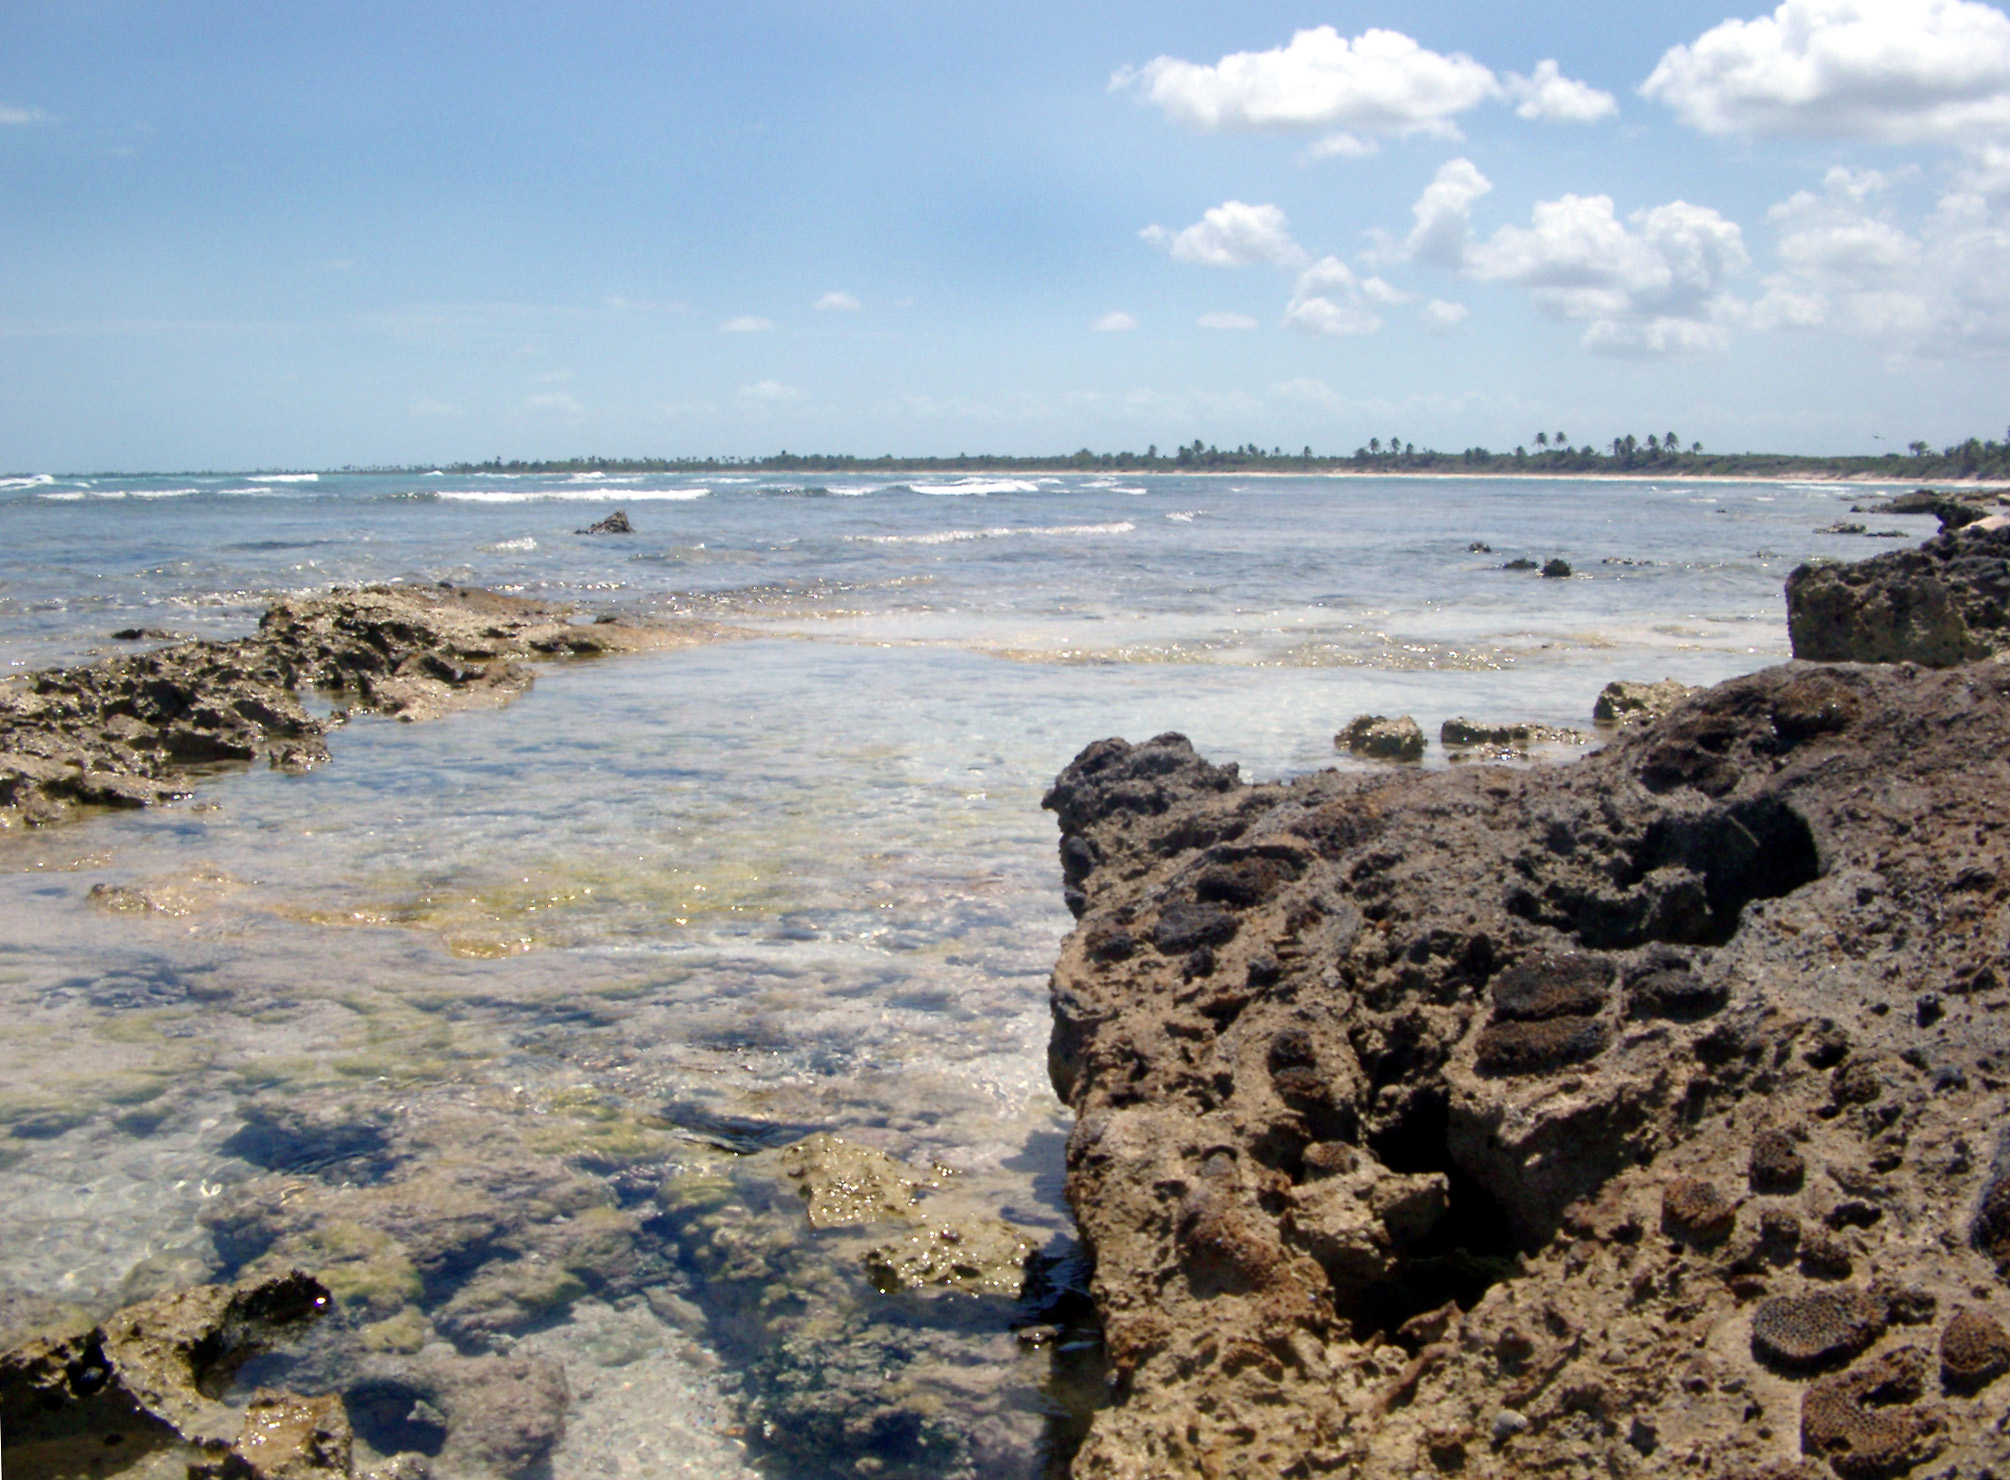 Rocky reef on the edge of the ocean with golden beach sand and a tranquil ocean view, Mexico